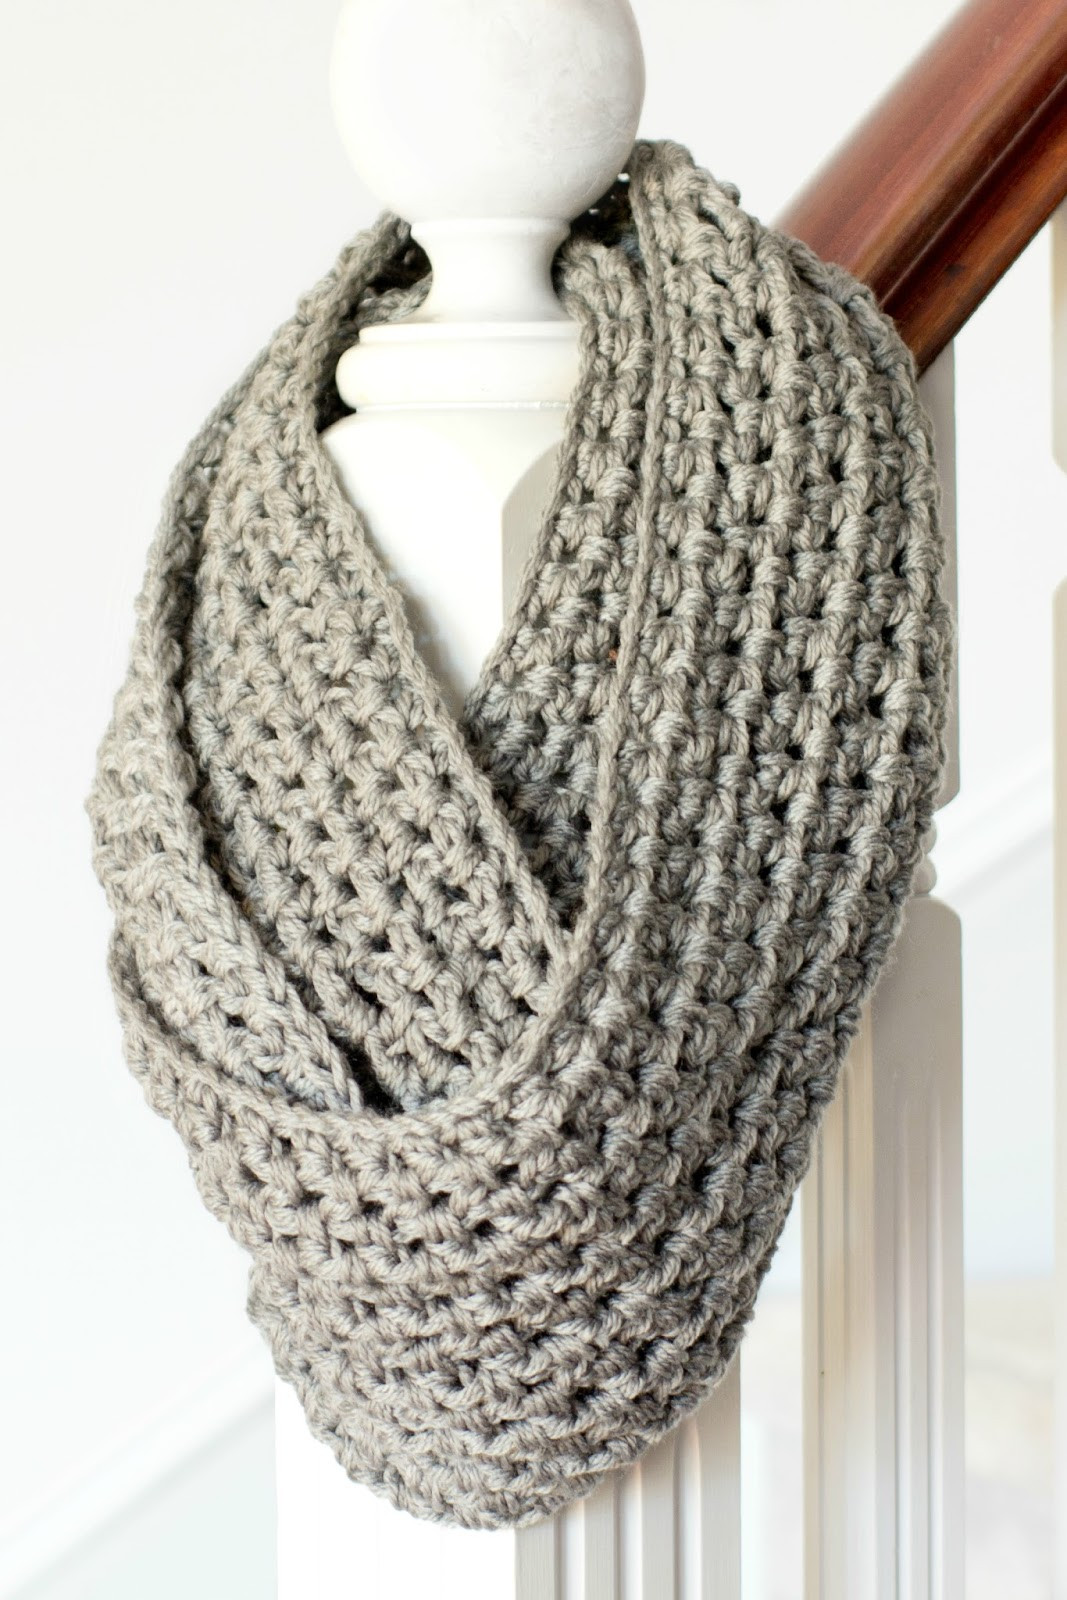 Awesome 42 Fun and Cozy Diy Scarves Crafts to Make Free Infinity Scarf Pattern Of Marvelous 48 Images Free Infinity Scarf Pattern